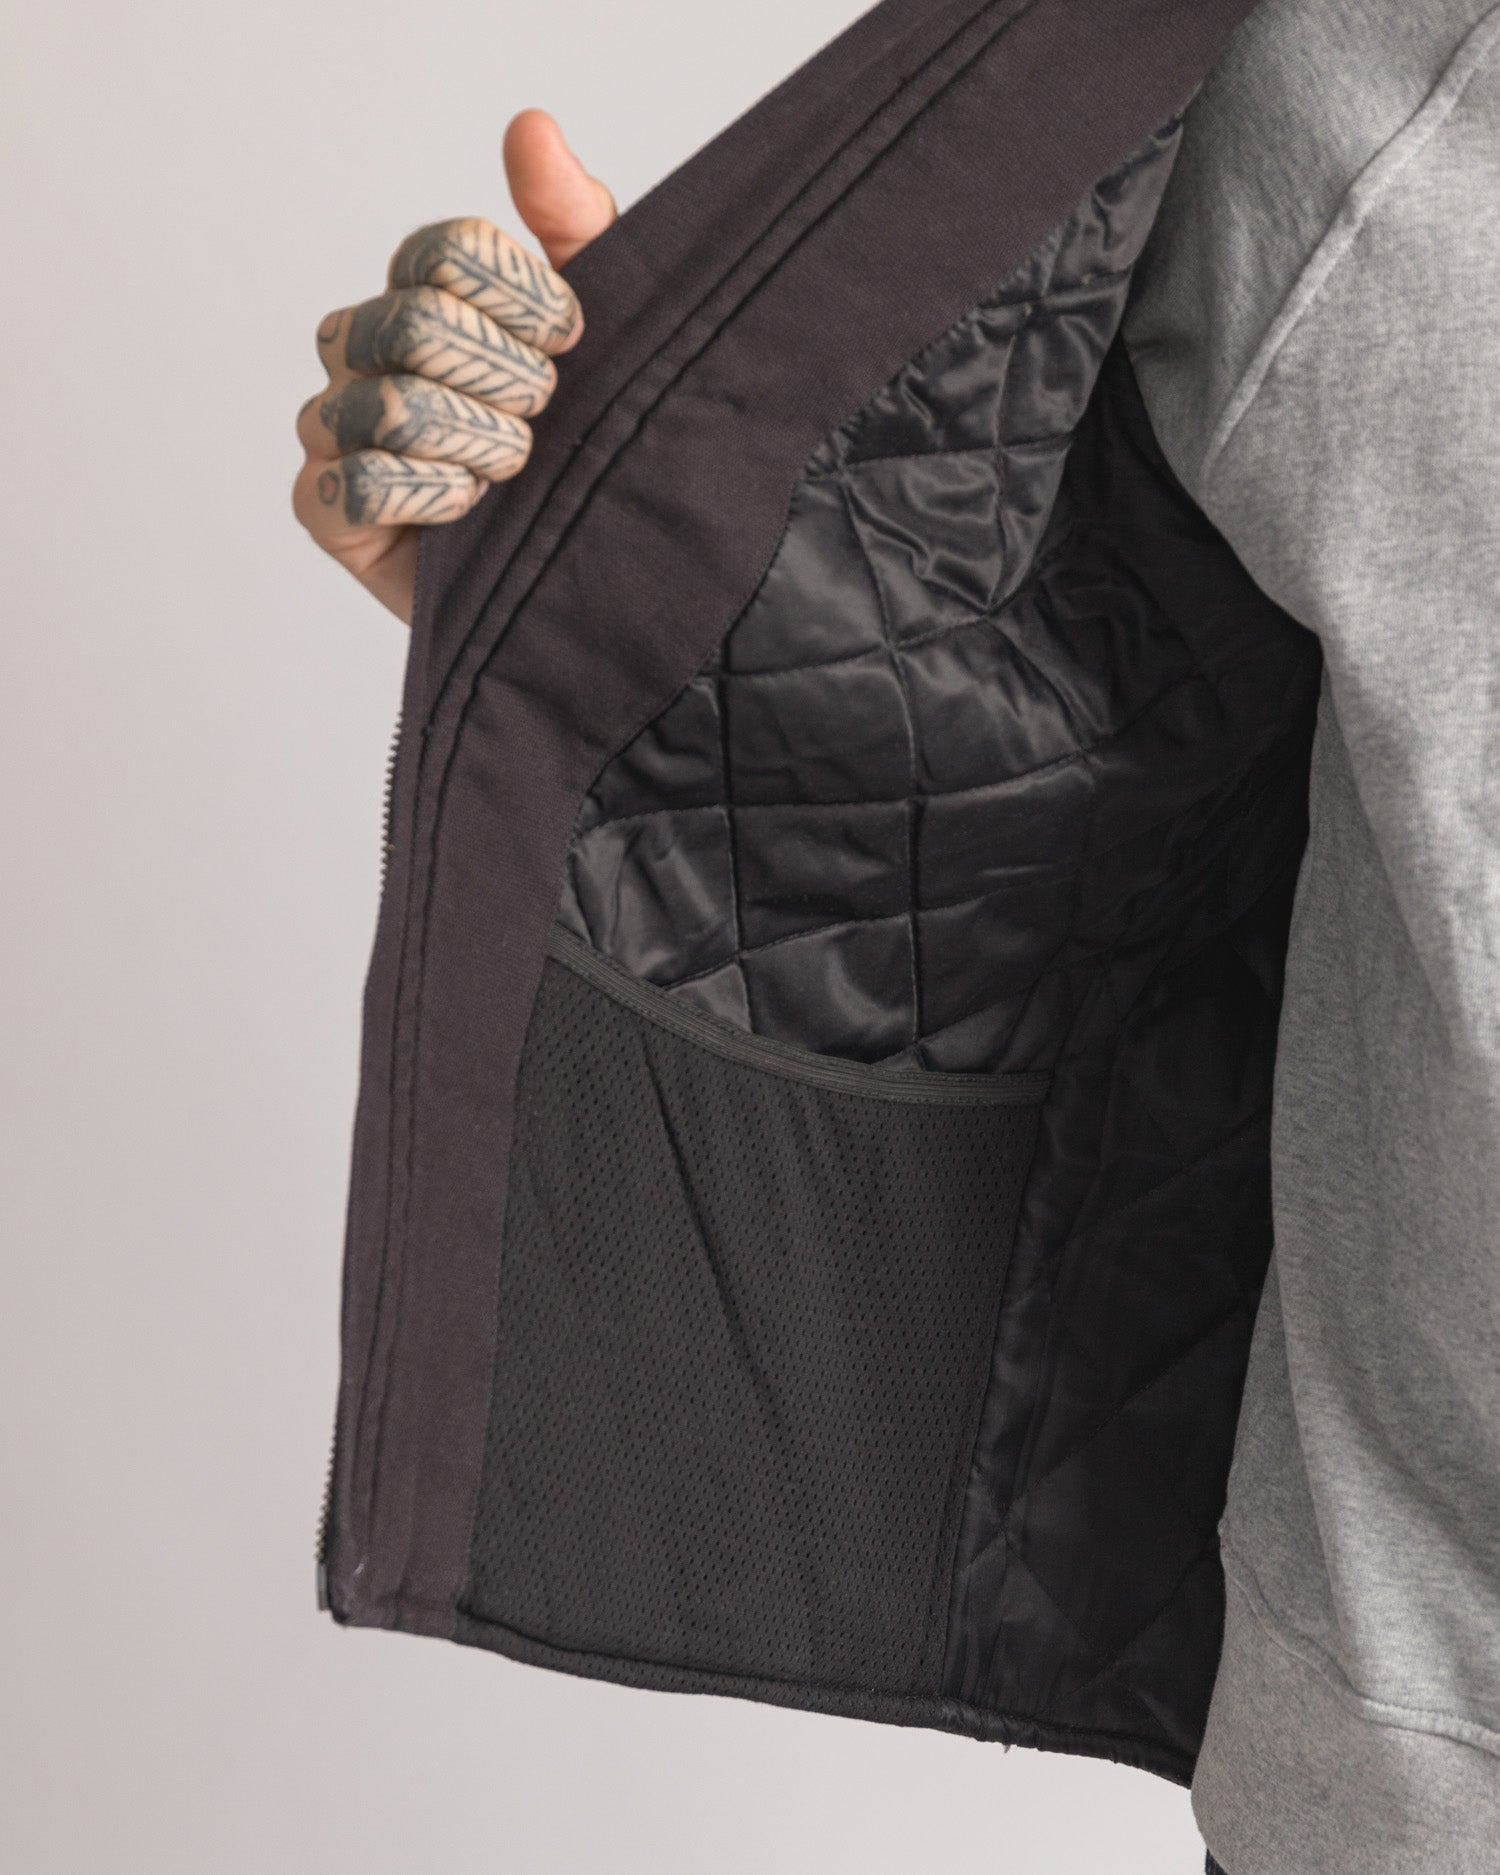 Inner Pocket on black cotton gilet